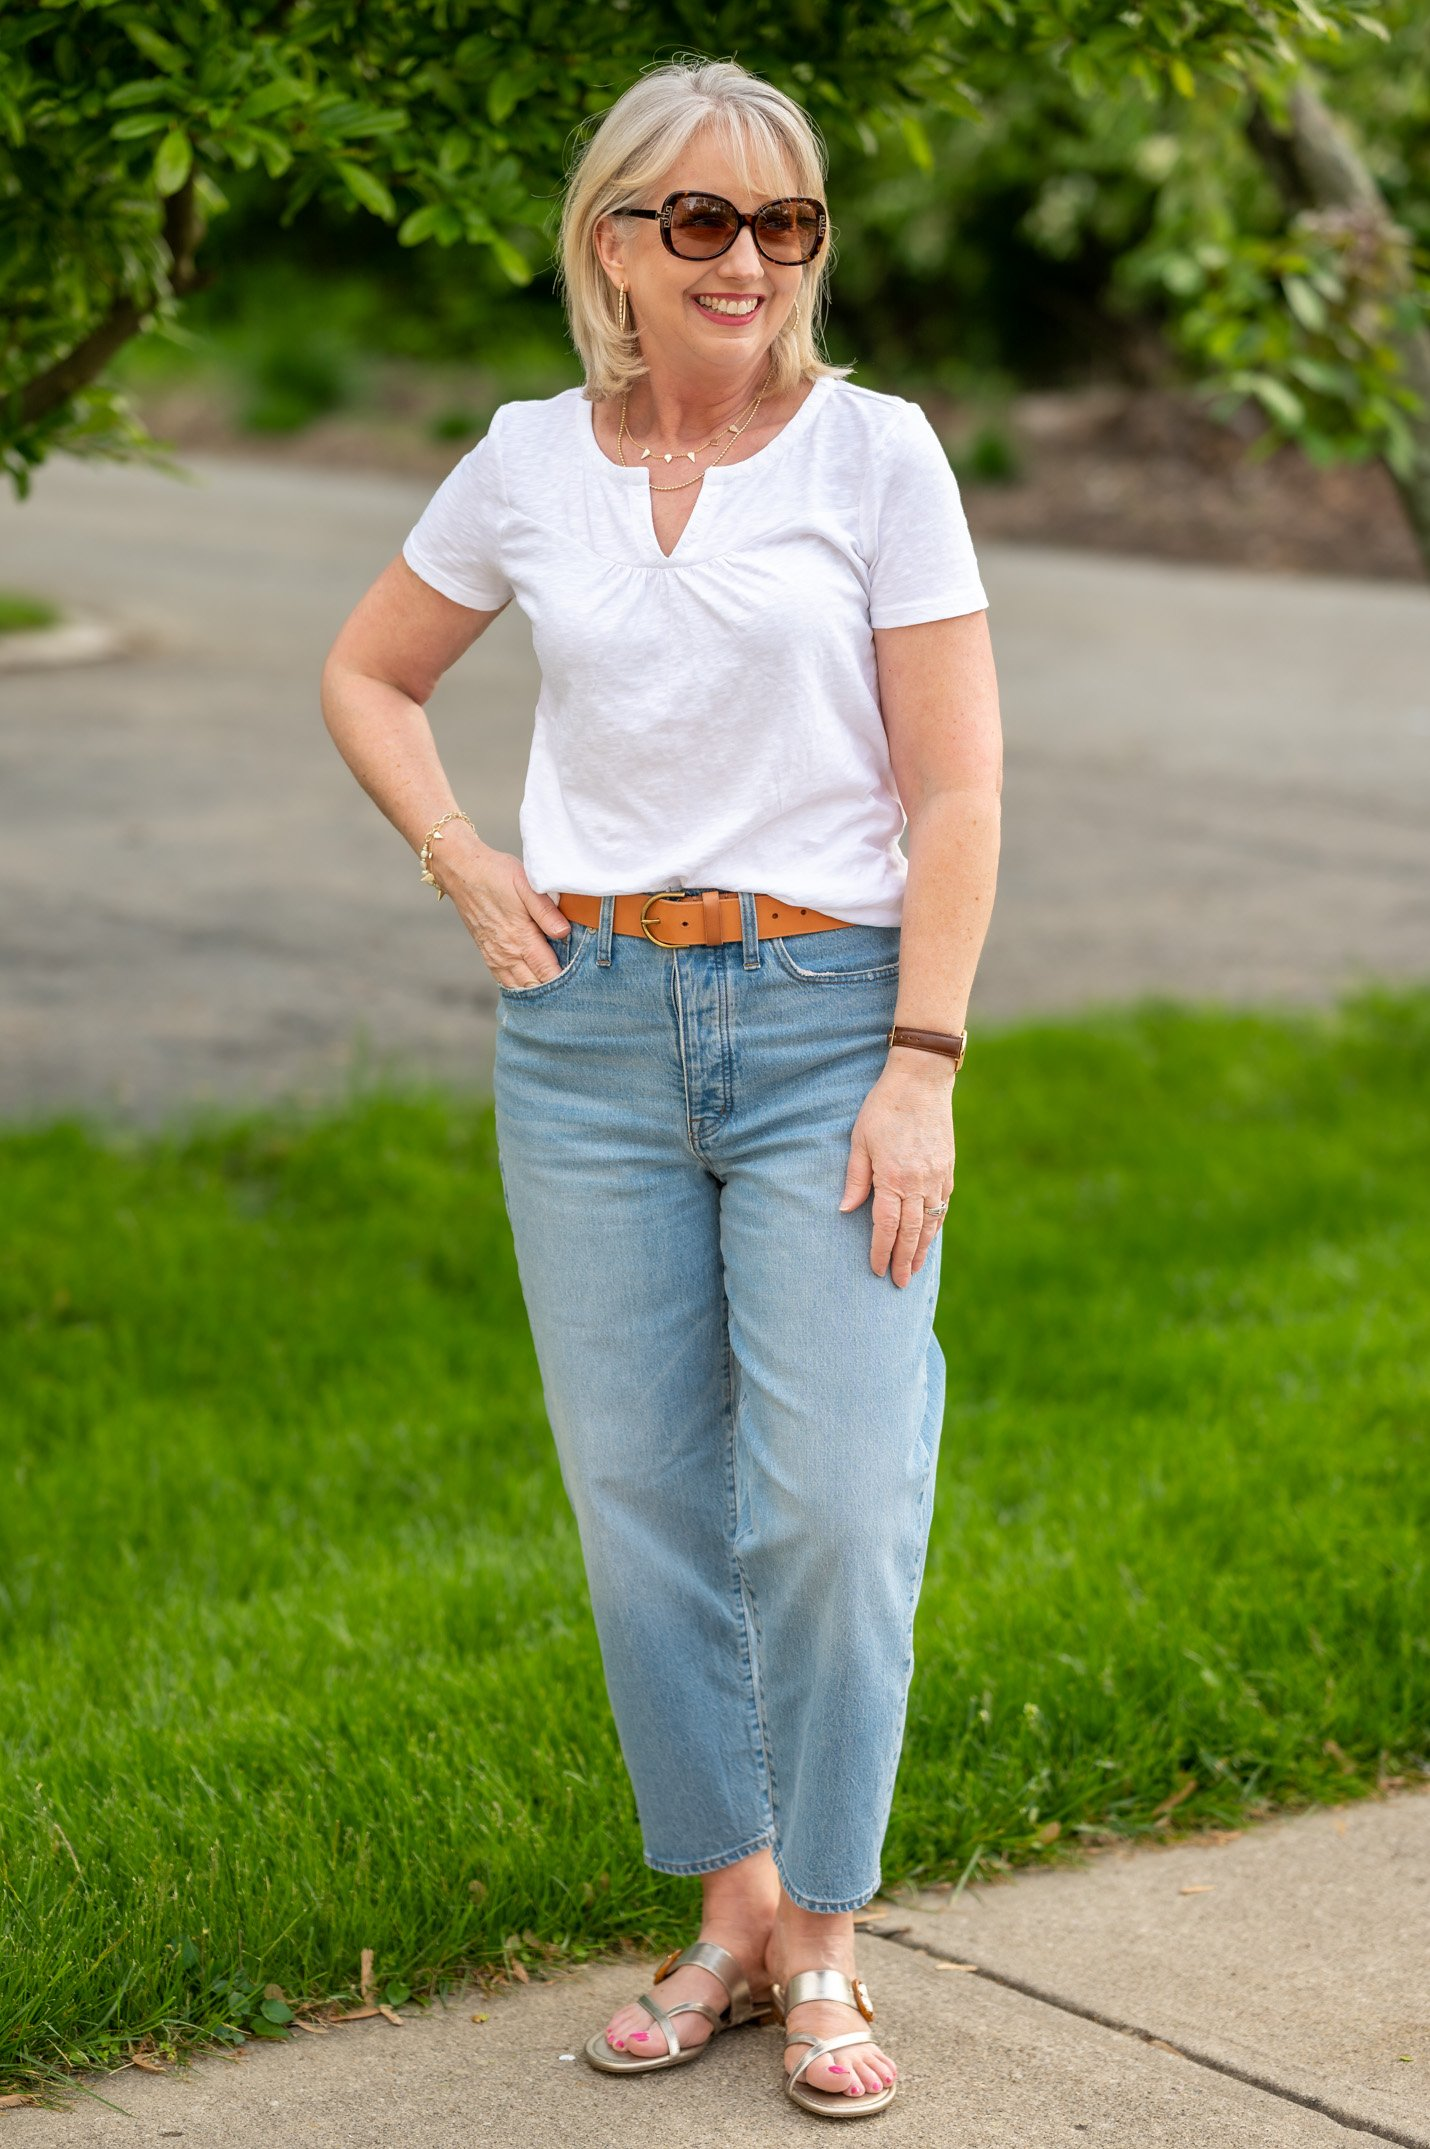 Just a White Tee and Jeans